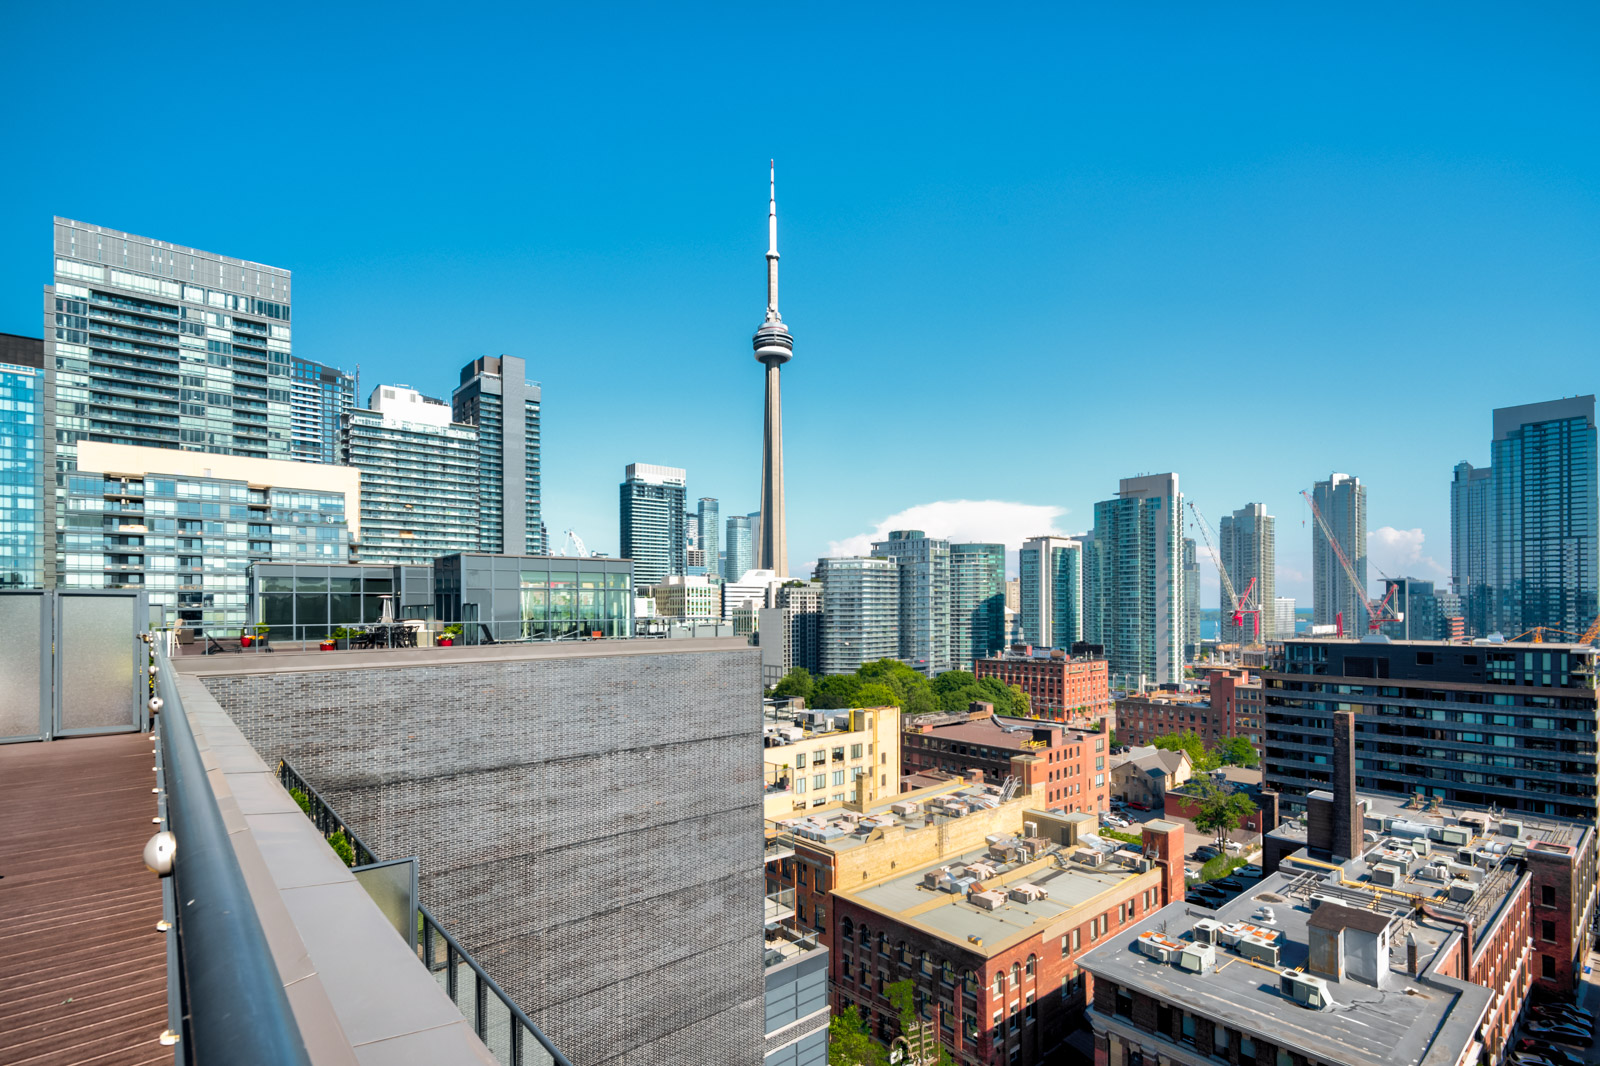 View of CN Tower and Toronto from terrace of Victory Lofts Penthouse Suite in 478 King St W Toronto.